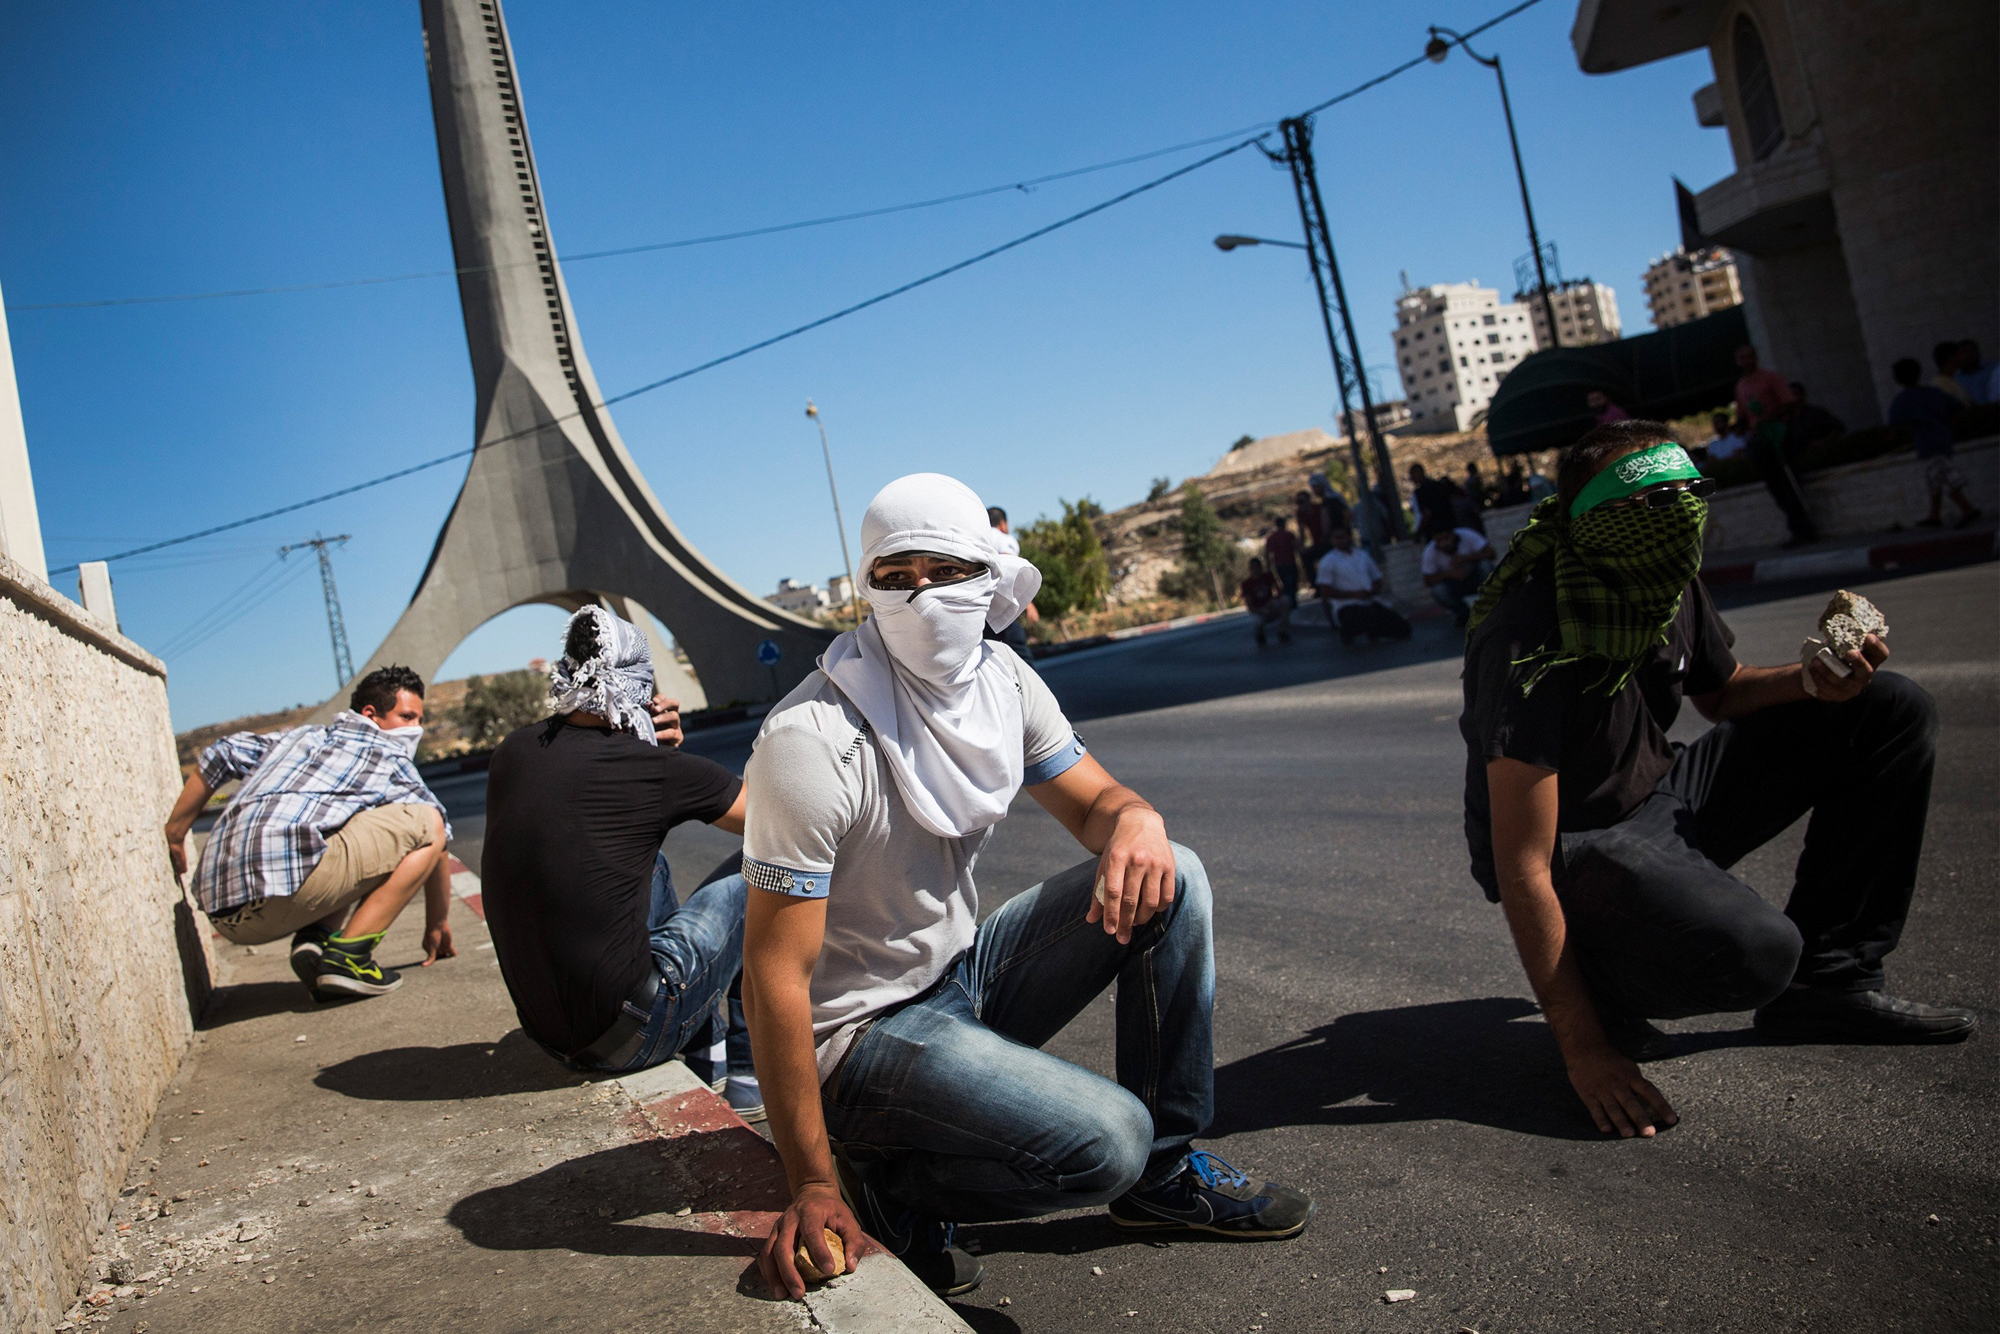 Palestinian supporters of Hamas take shelter while clashing with Israeli security forces on July 25, 2014 near Ramallah, West Bank.